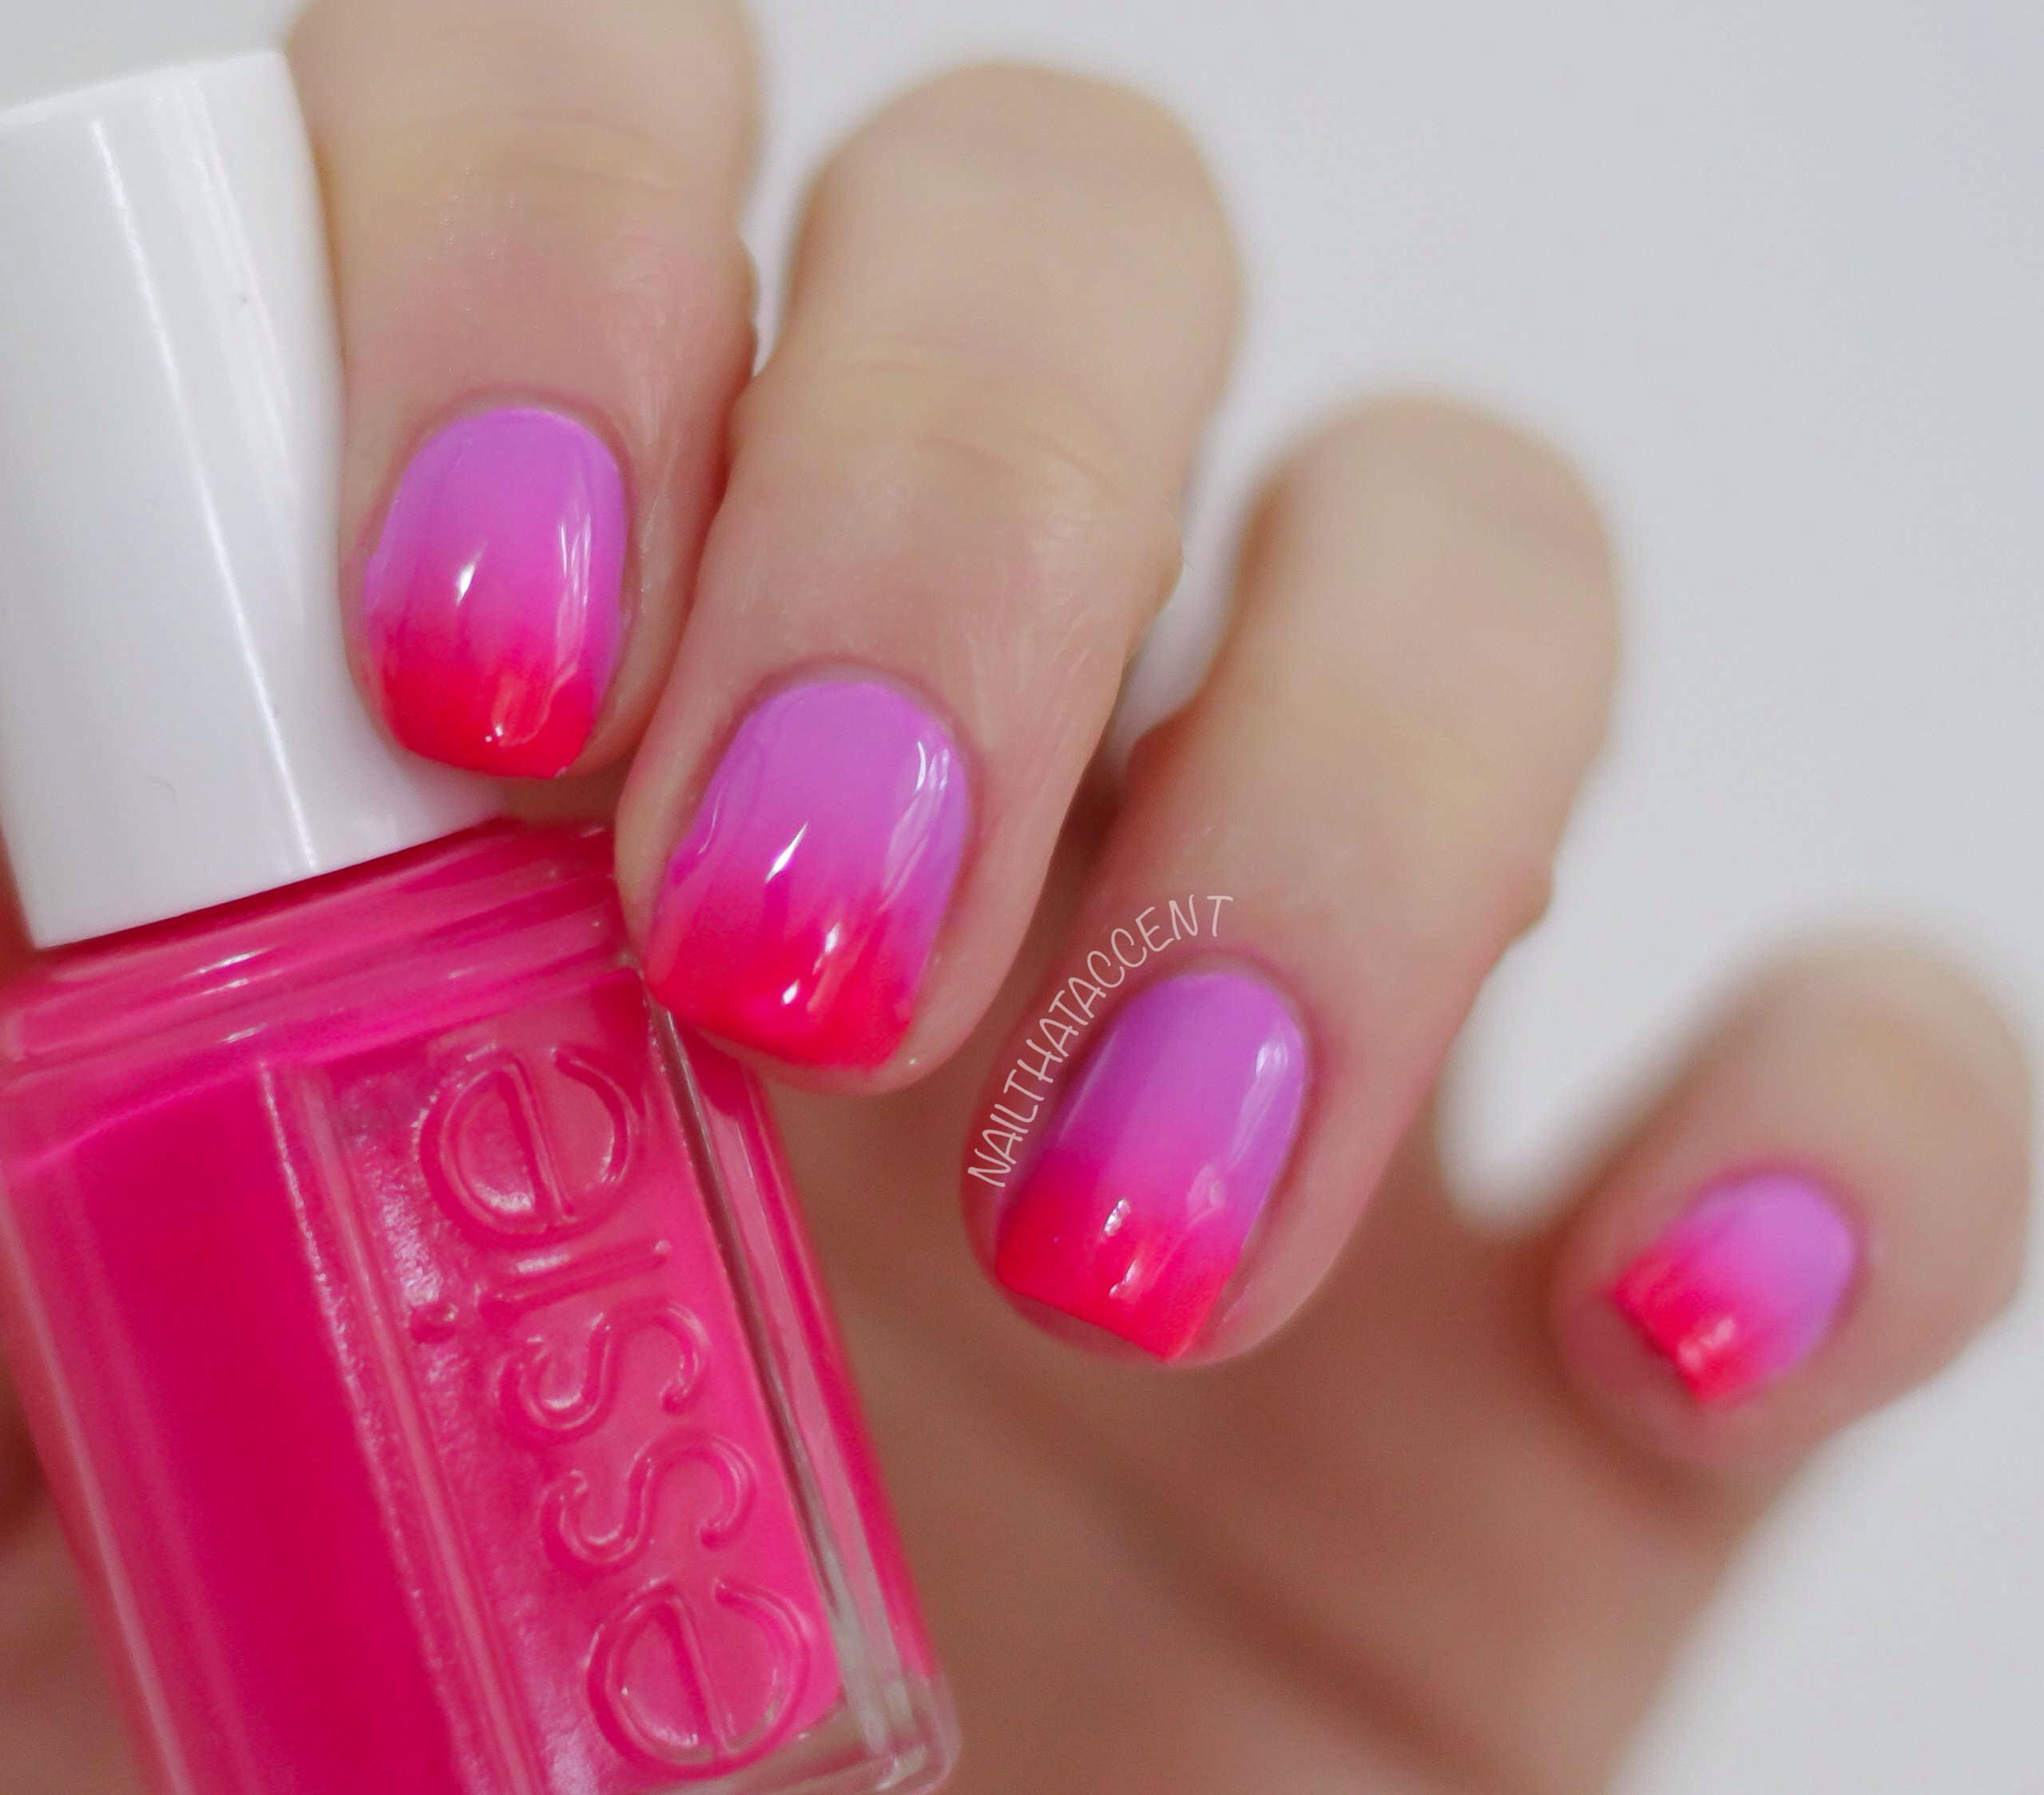 Bright ombré nails with Essie Bermuda shorts and dj play that song ...